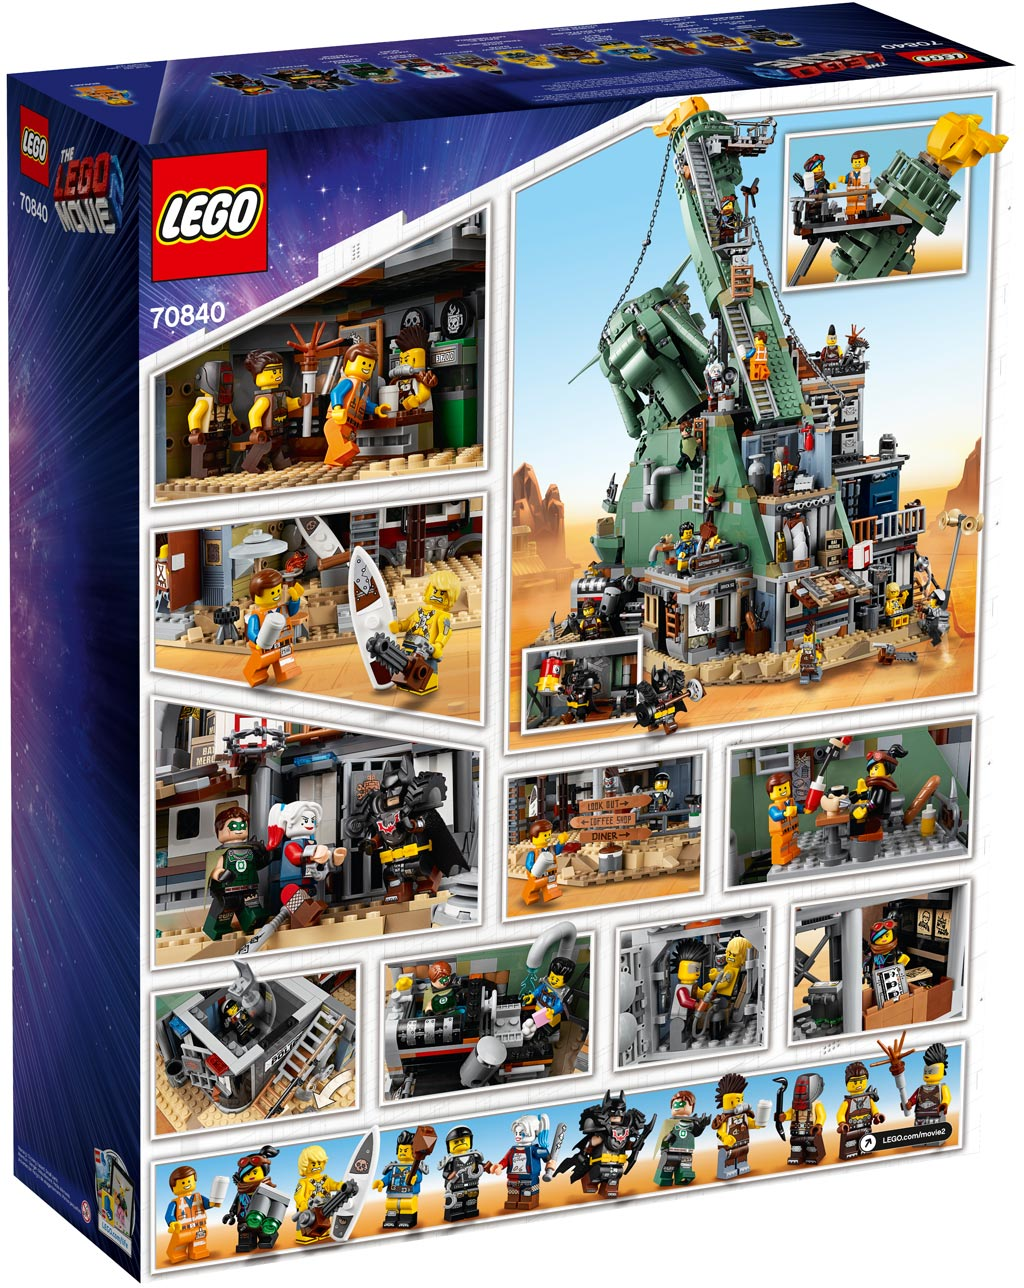 the-lego-movie-2-welcome-to-apocalypseburg-70840-box-back-2019 zusammengebaut.com